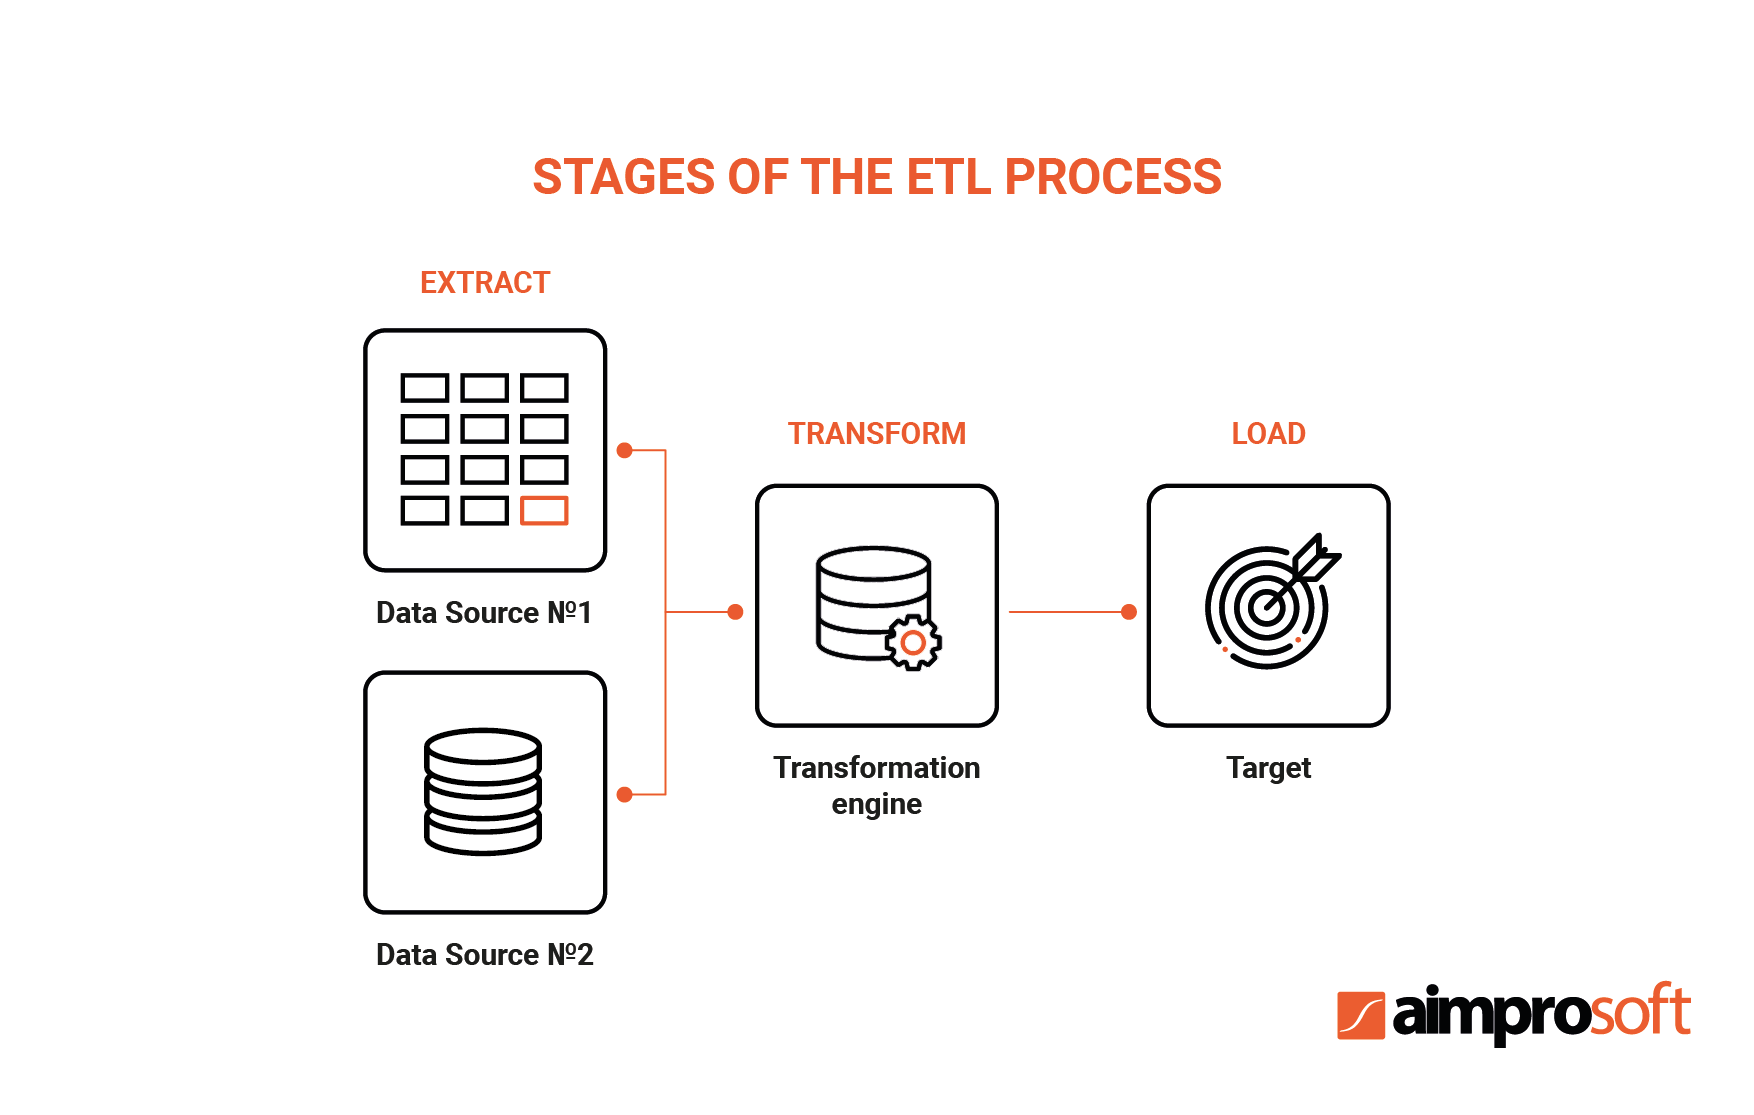 Stages of the ETL process